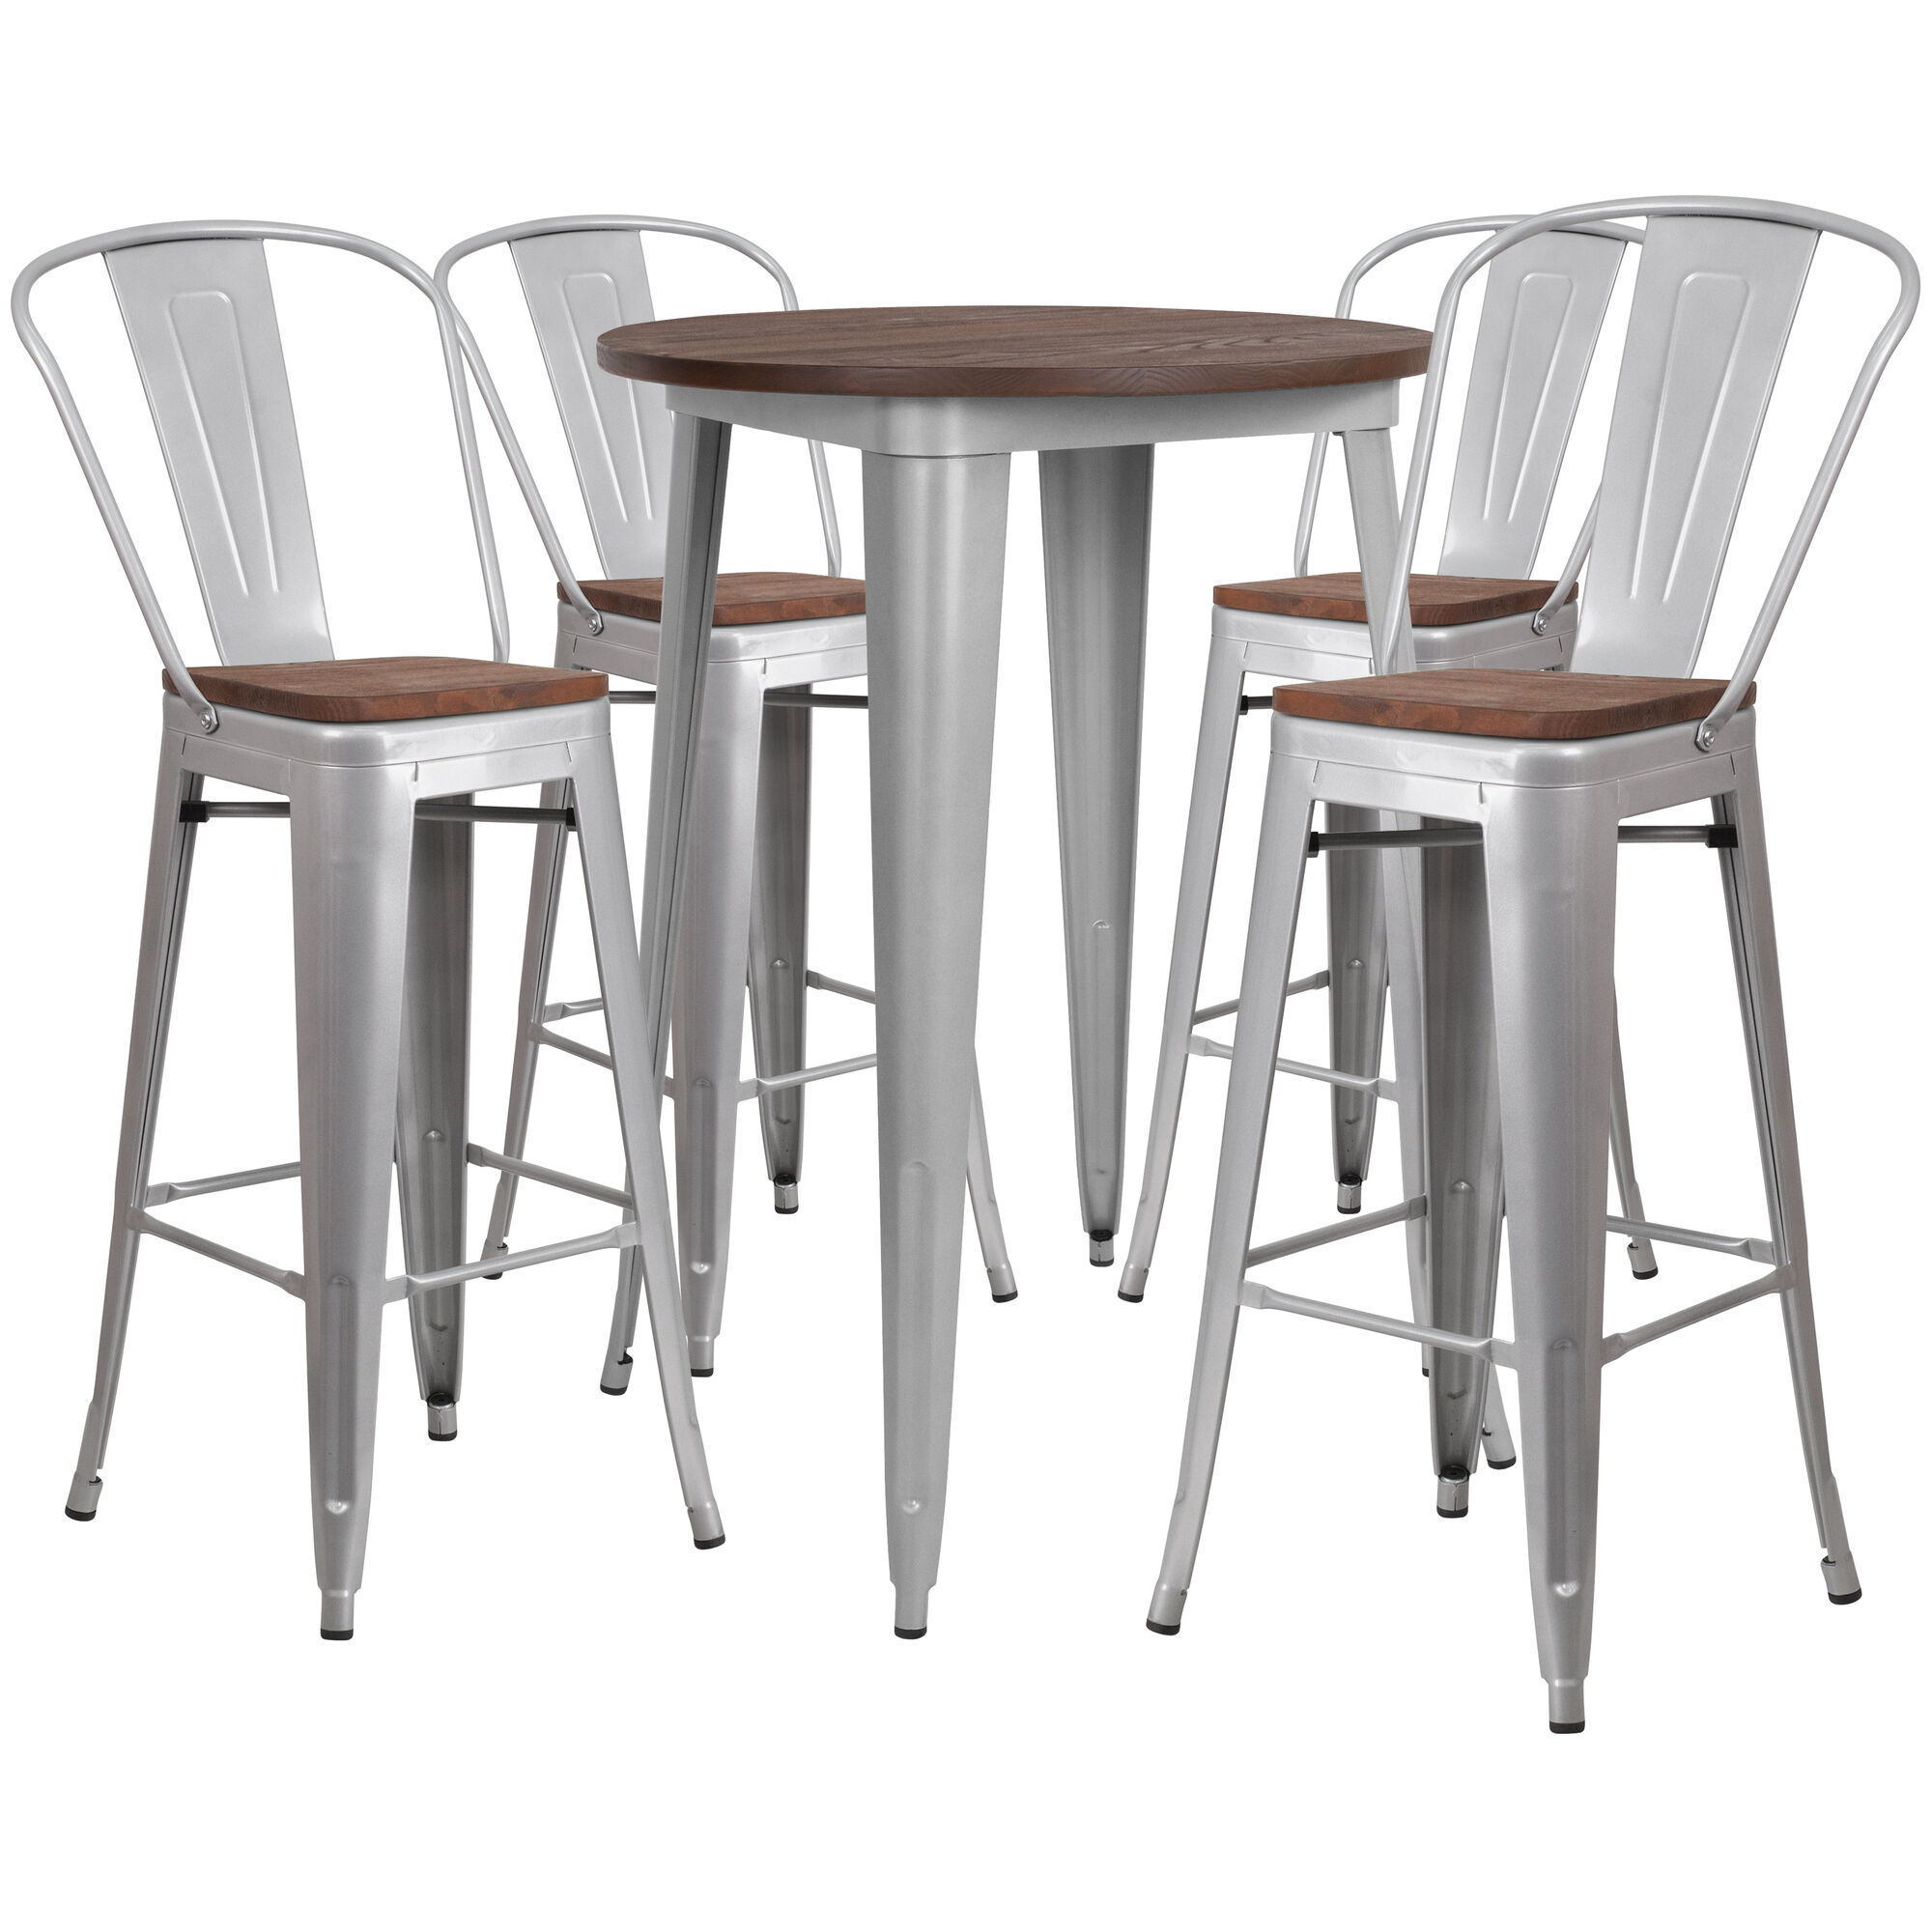 Outstanding 30 Round Silver Metal Bar Table Set With Wood Top And 4 Stools Onthecornerstone Fun Painted Chair Ideas Images Onthecornerstoneorg